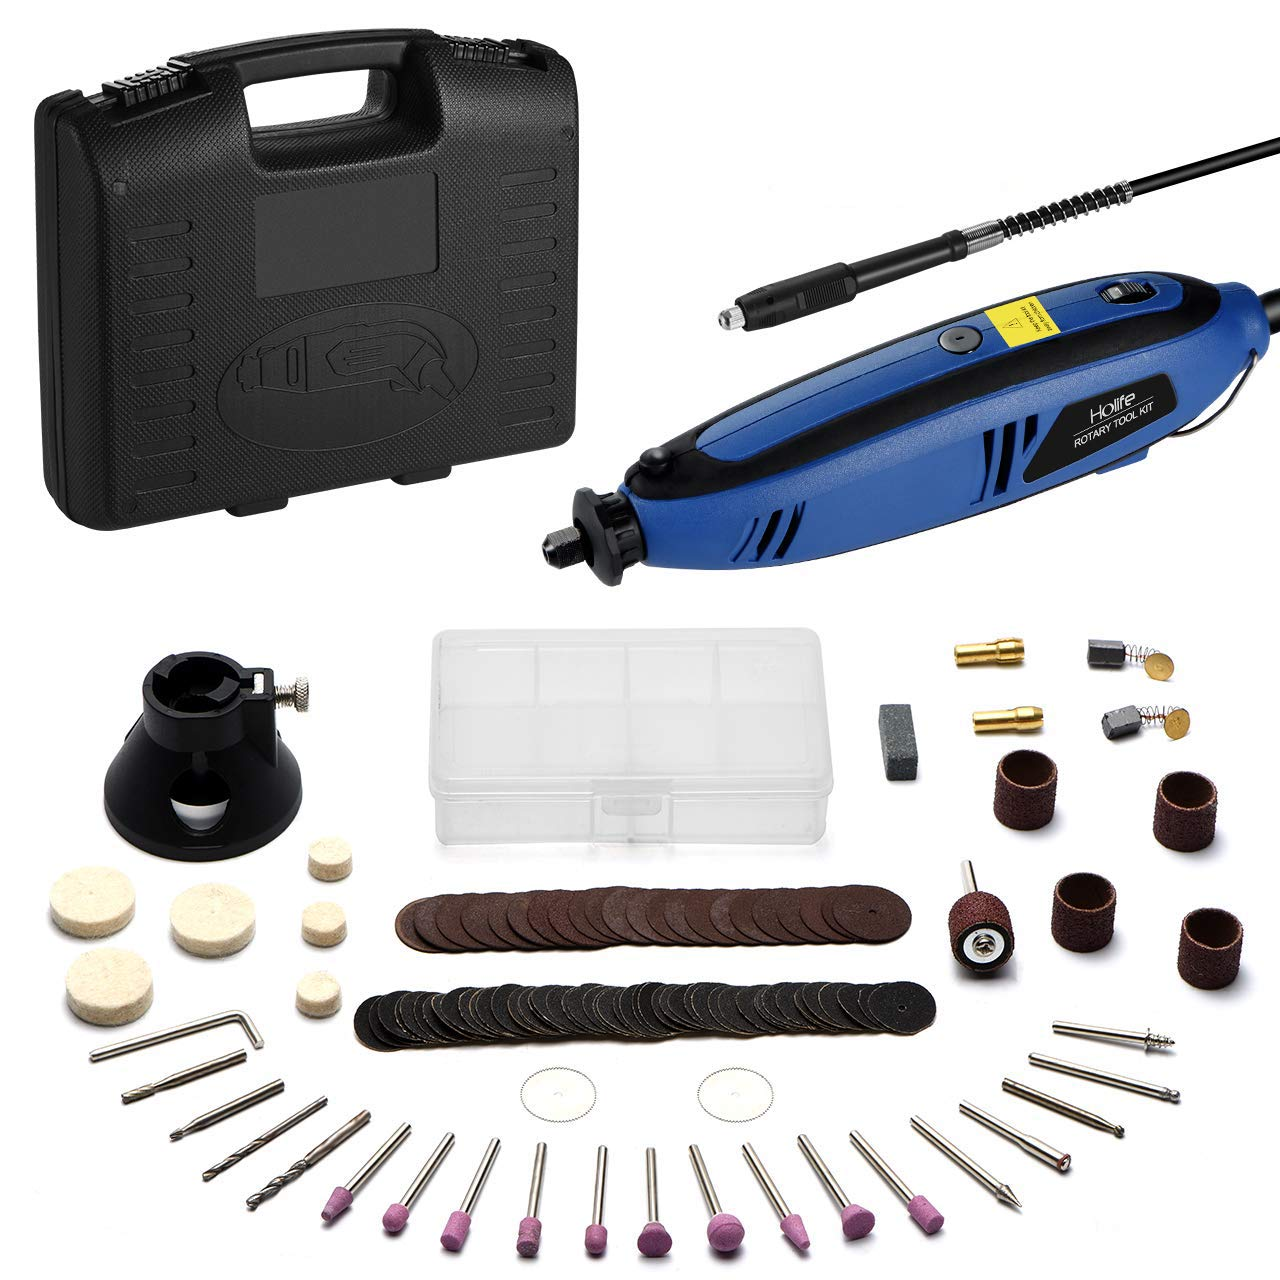 Holife Rotary Tool Kit